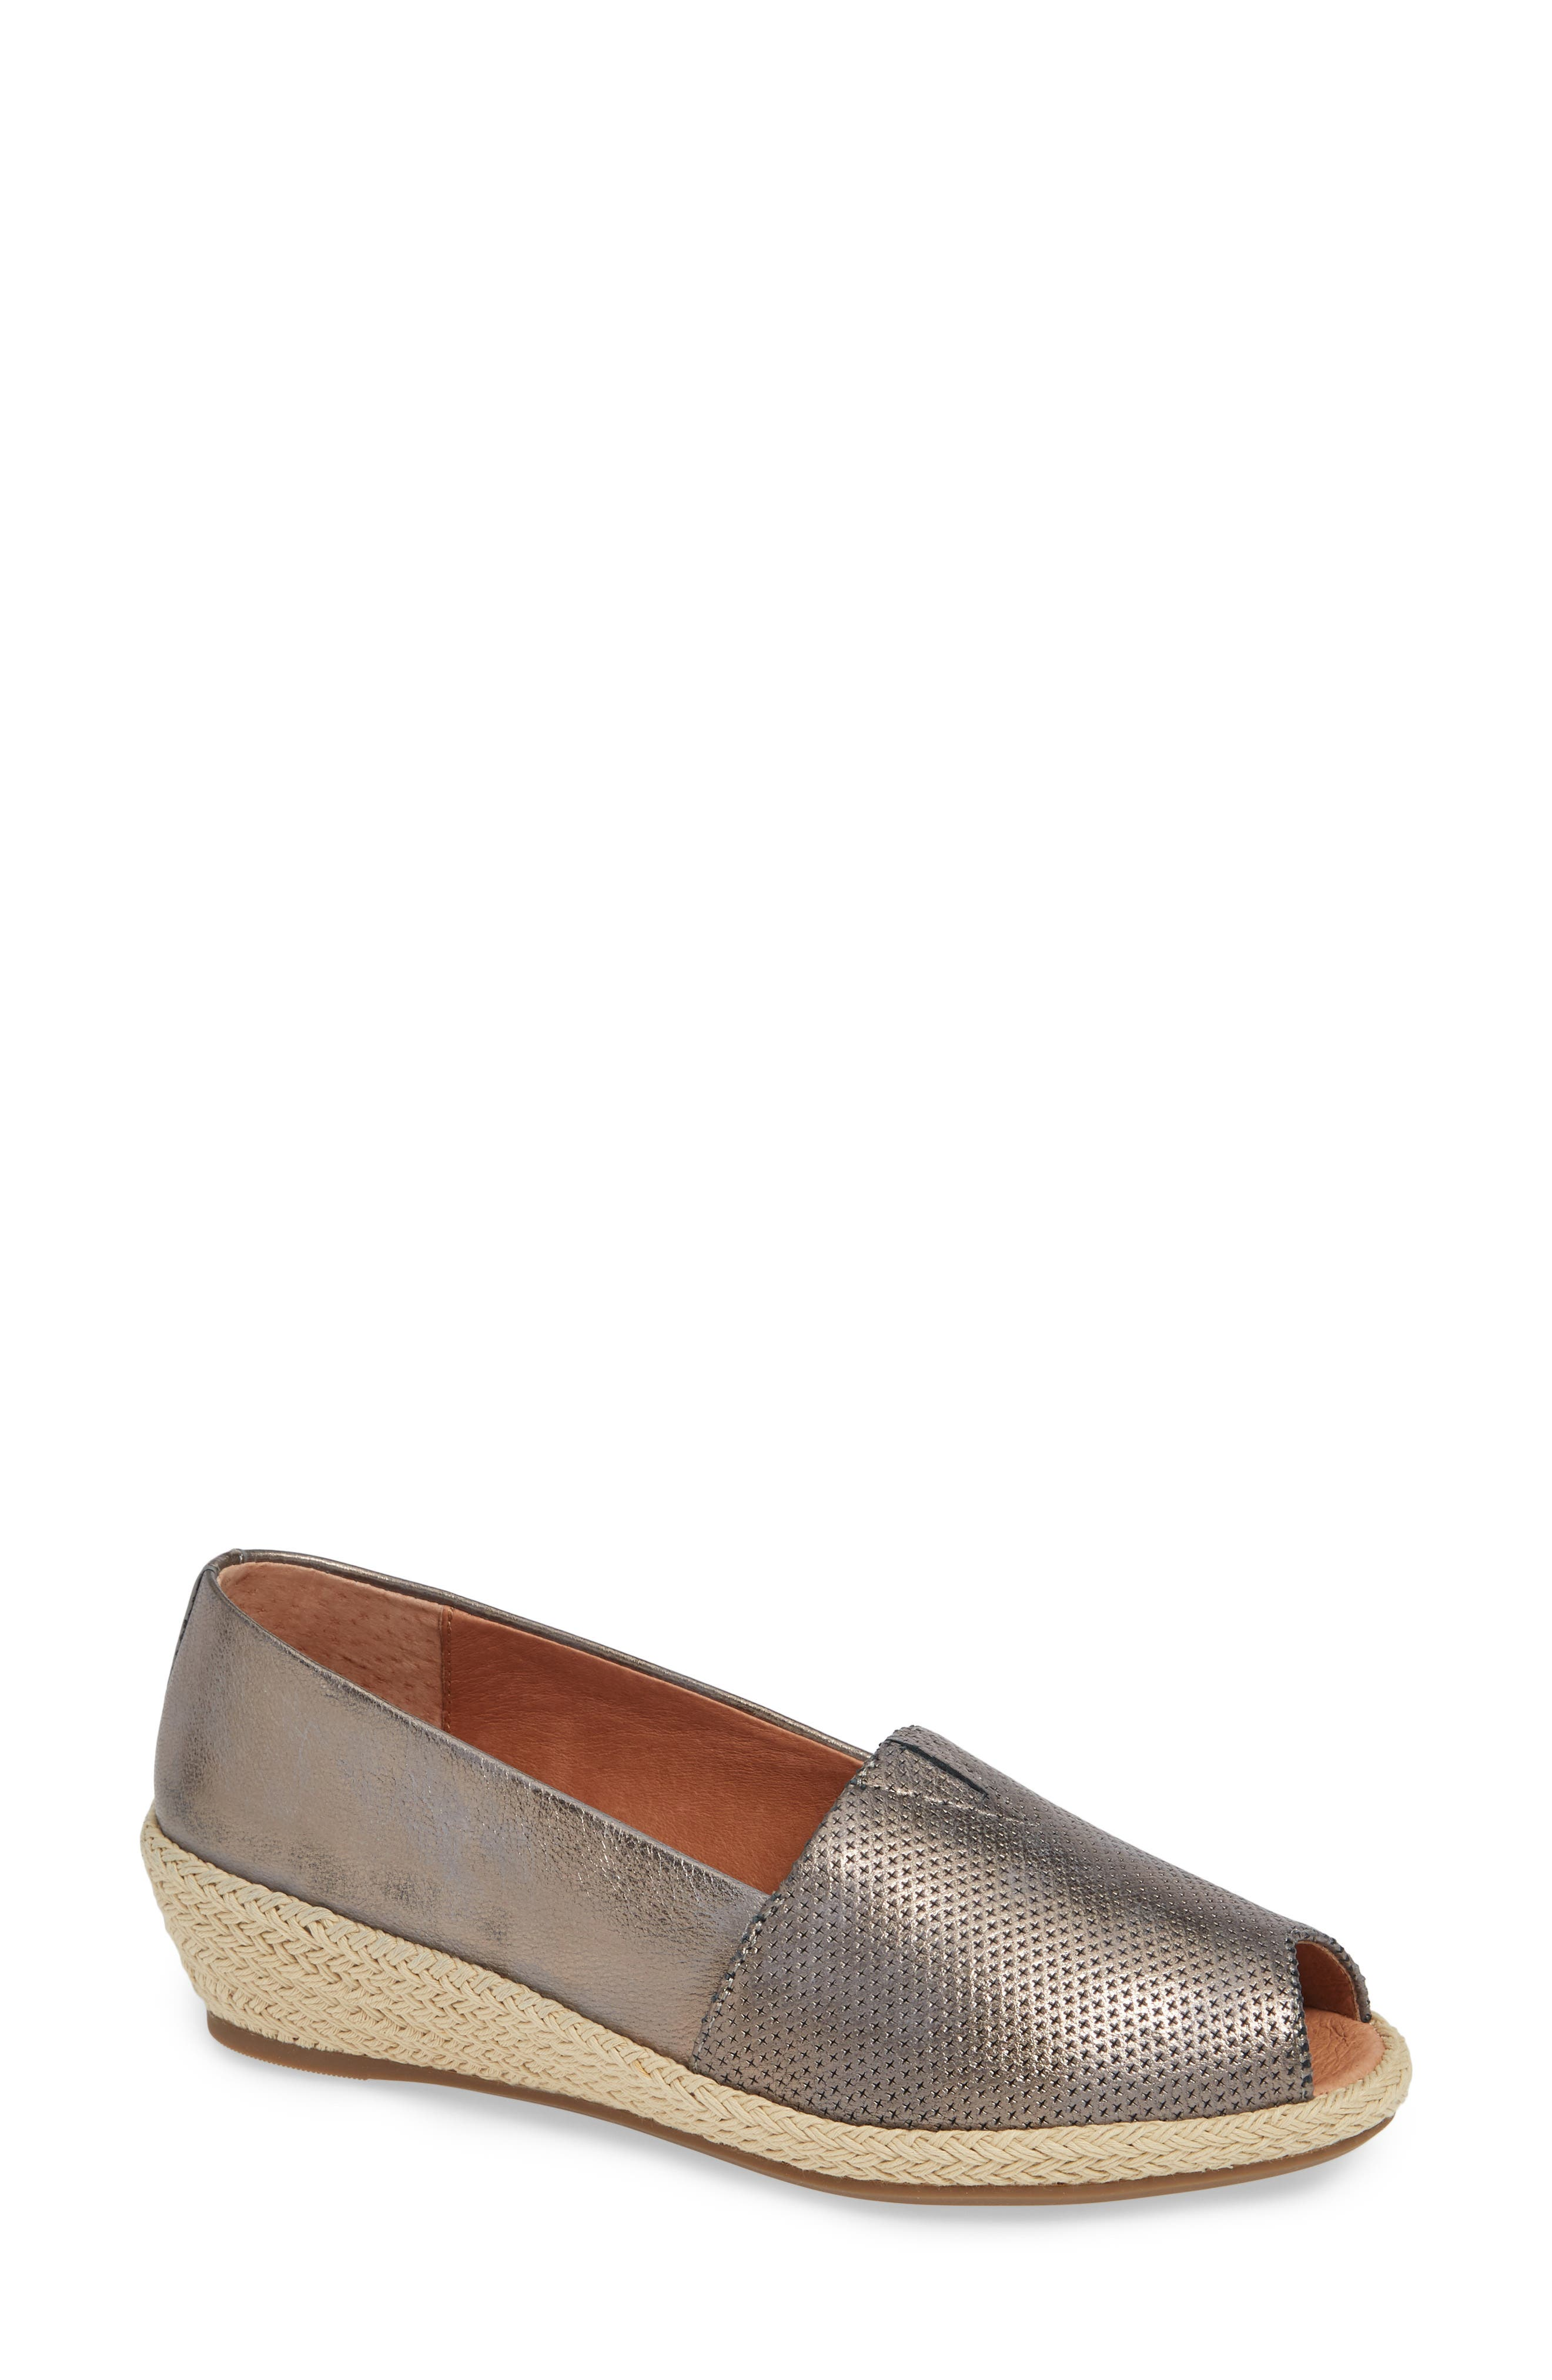 GENTLE SOULS BY KENNETH COLE Luca Open Toe Wedge Espadrille, Main, color, PEWTER METALLIC LEATHER